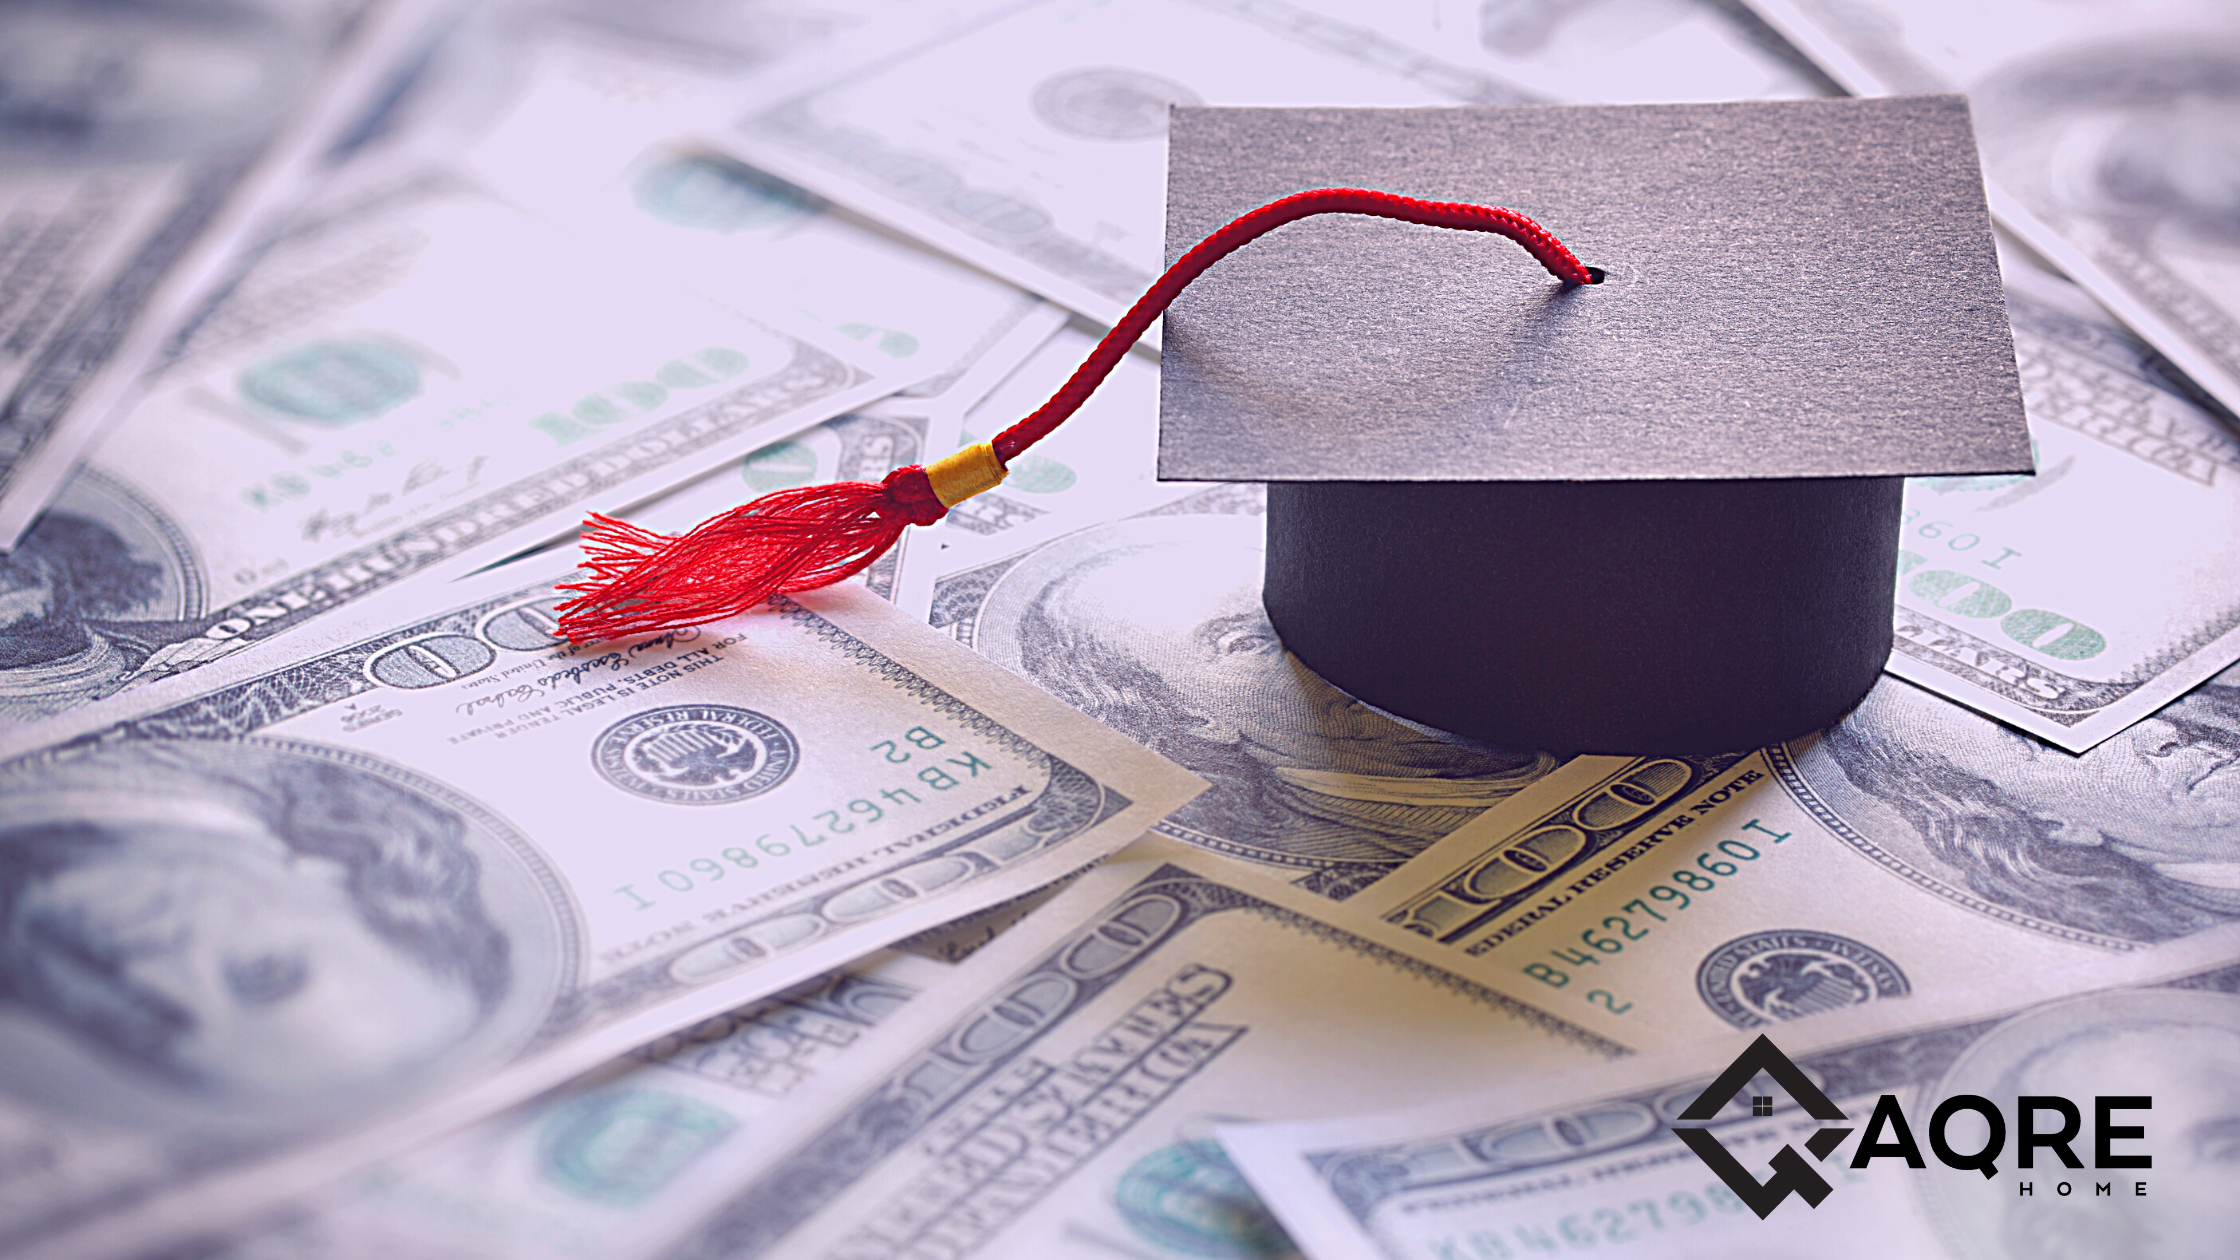 How to Buy a Home with Student Loans: Tips and Advice for New Graduates